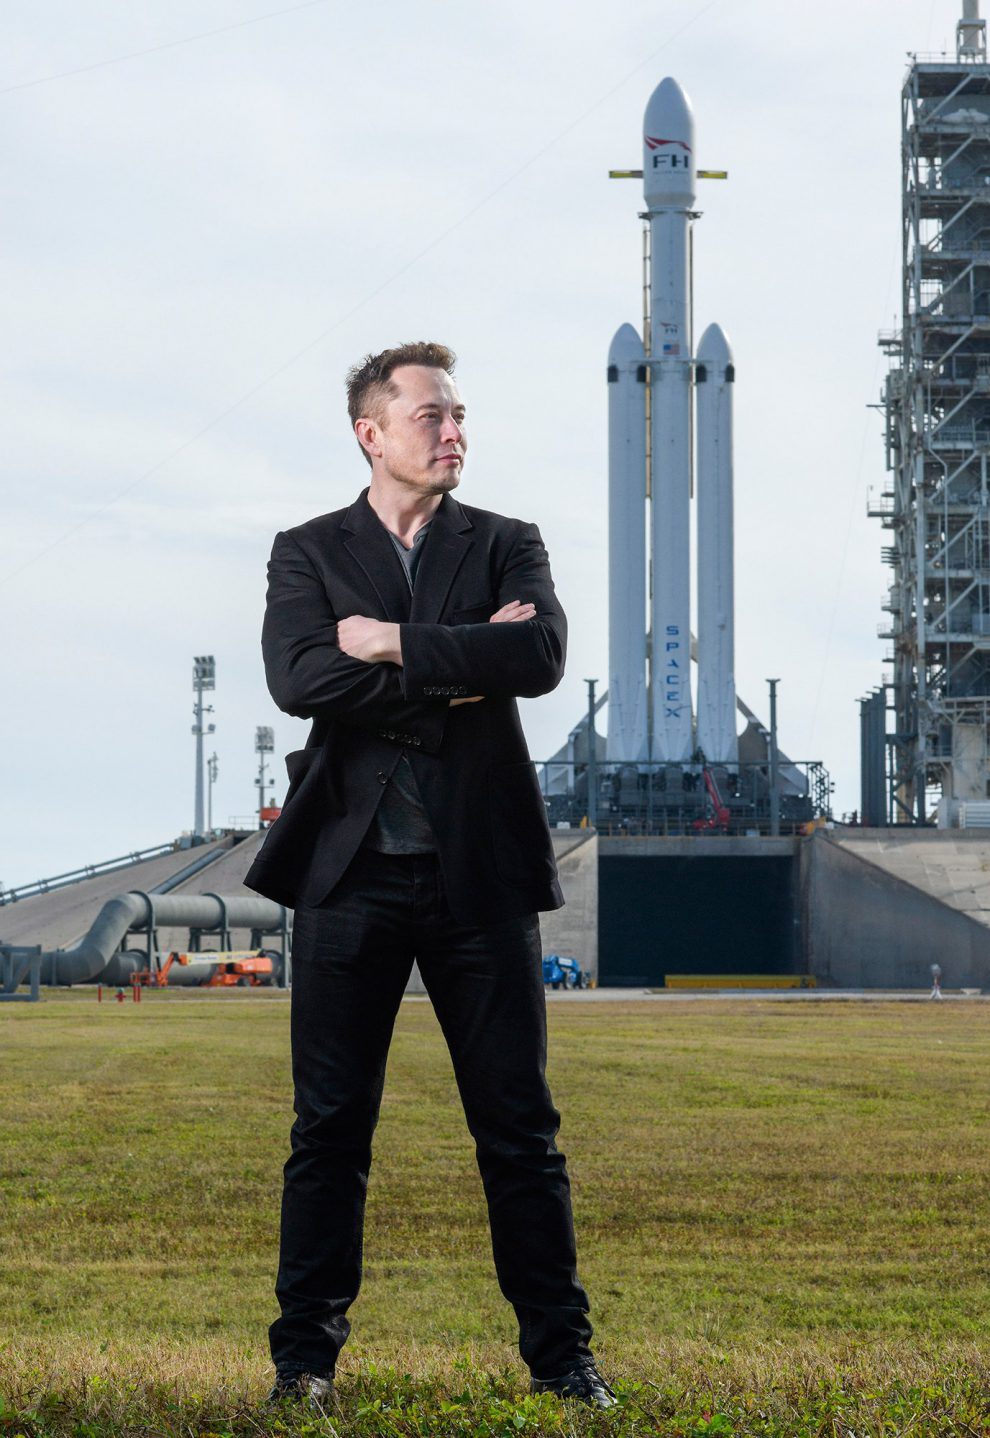 Elon Musk Personal Life, Education,Achievements And Everything You Need To Know